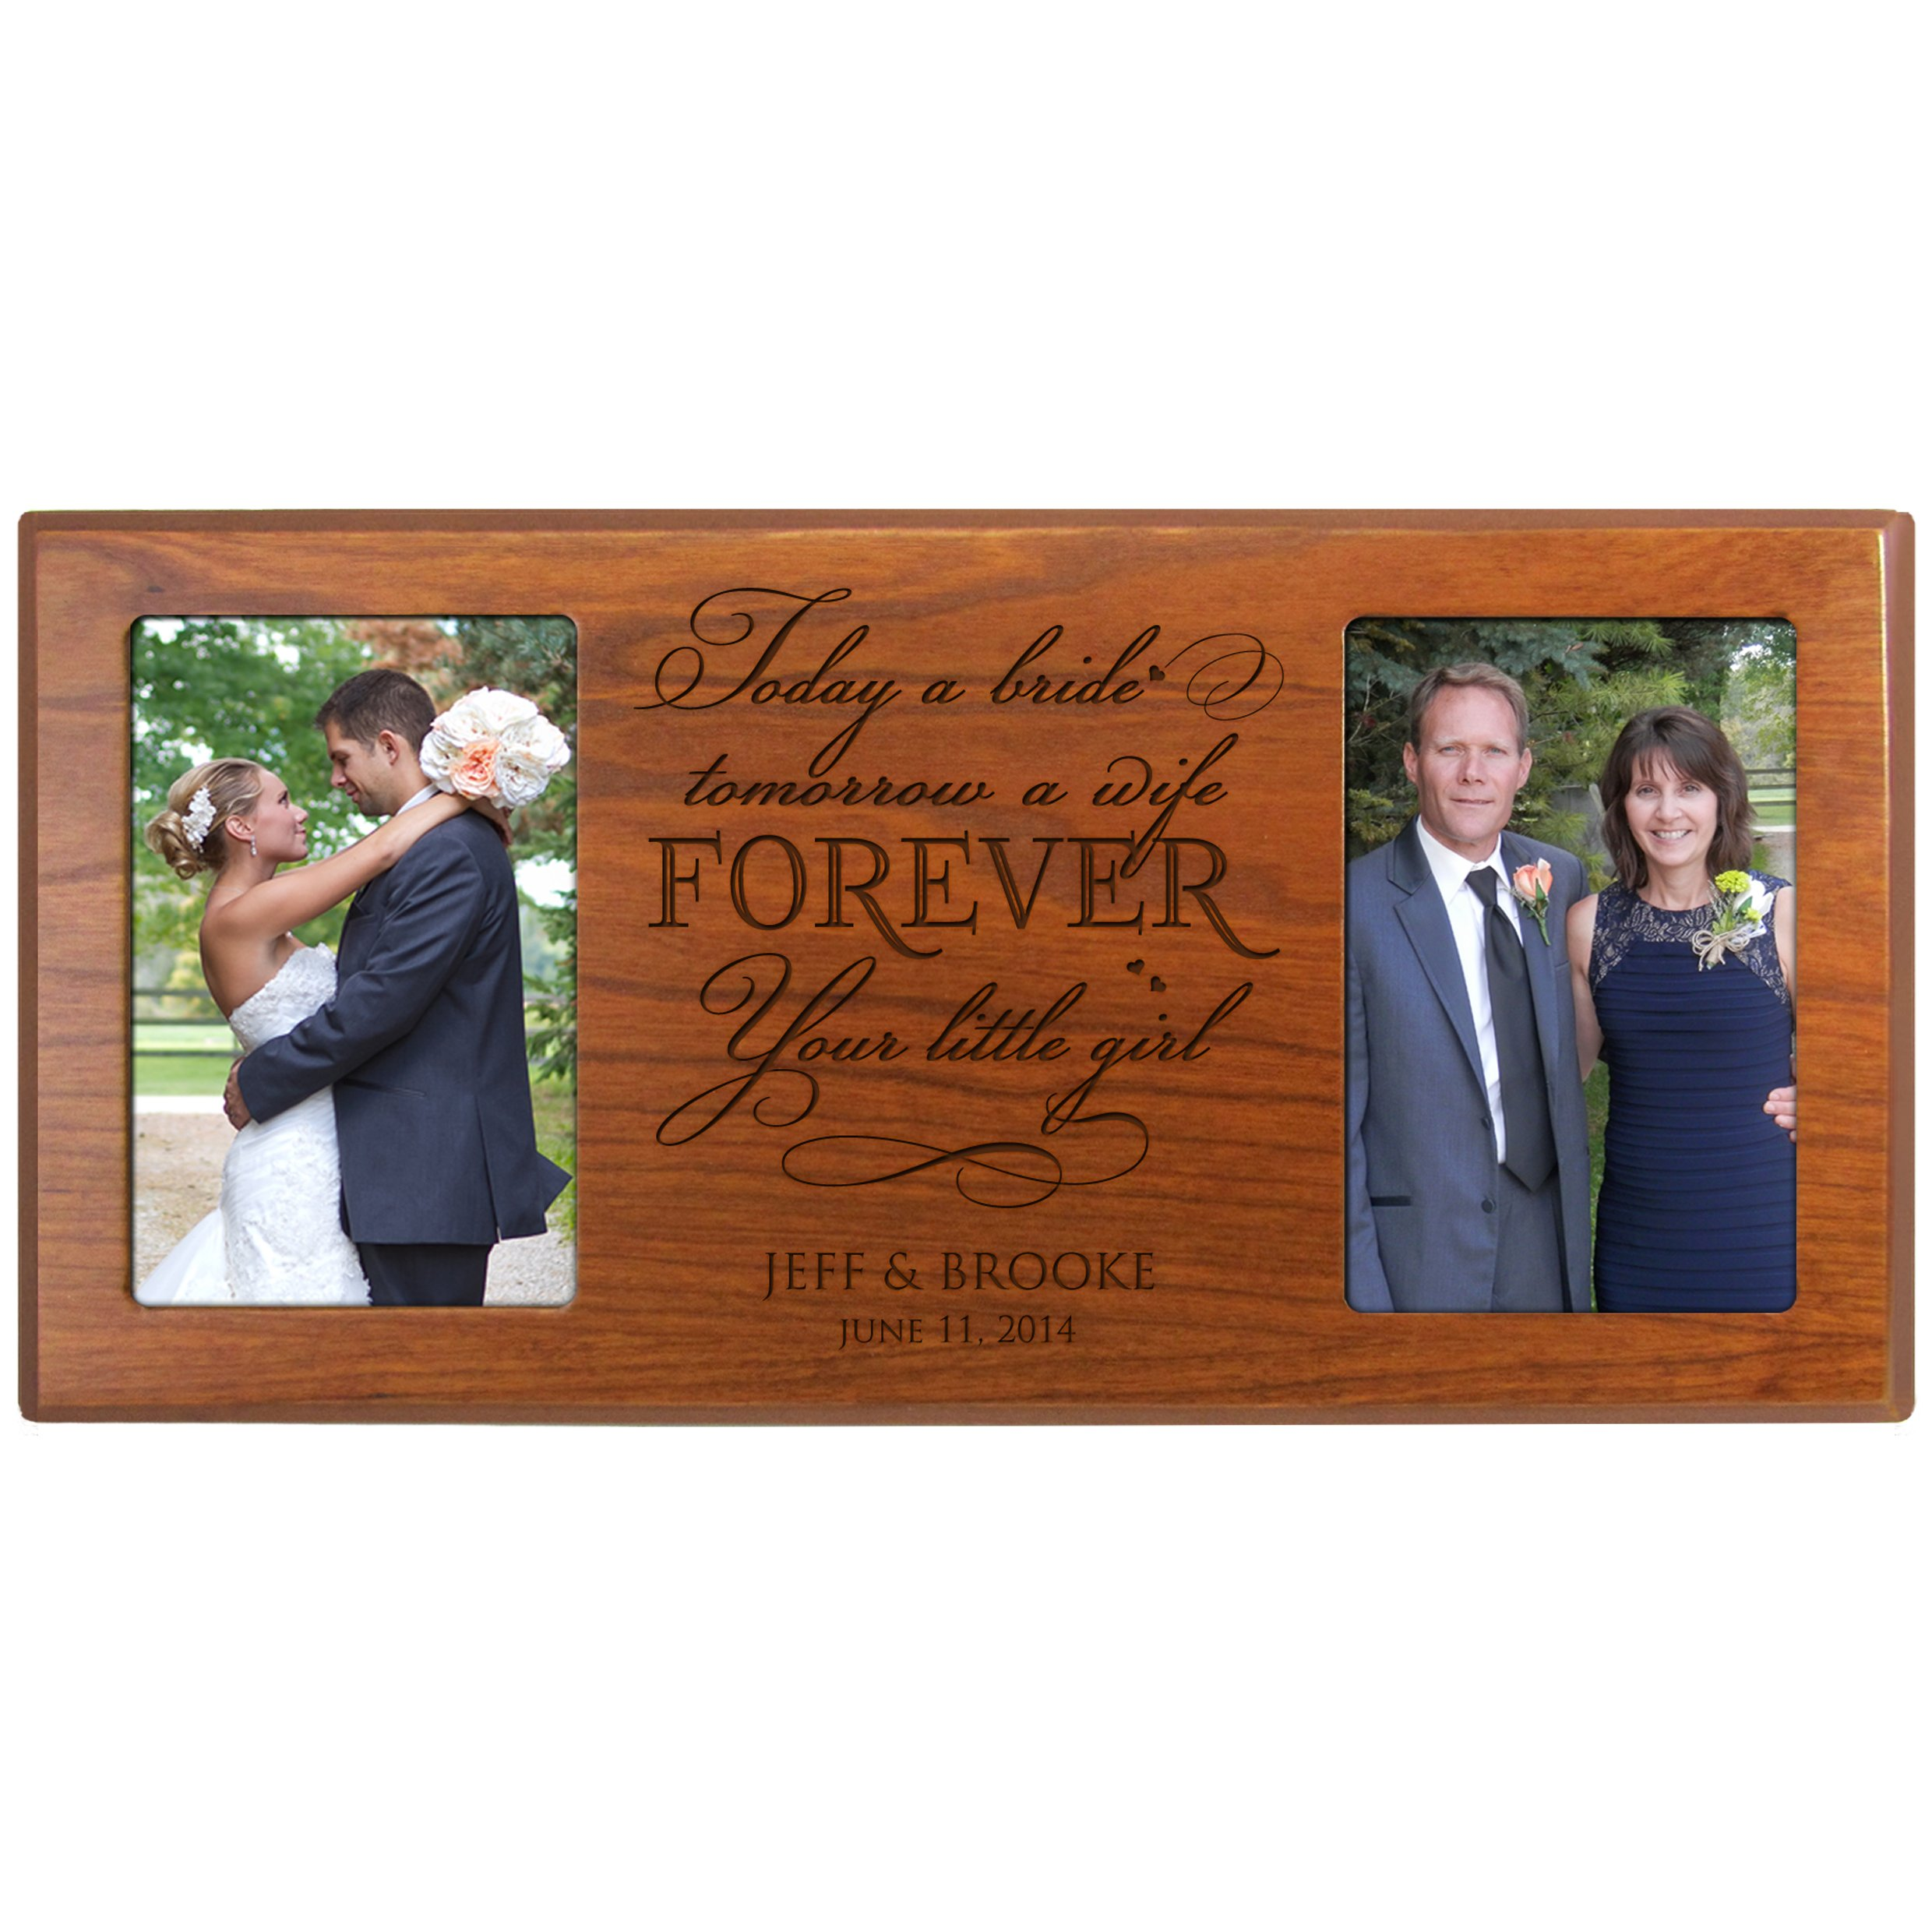 Personalized Parent Wedding Gifts,wedding Picture Frame Wedding Gift for Parents for Bride and Groom Mom and Dad Thank-you Gift Today a Bride Tomorrow a Wife Forever Your Little Girl(Cherry)